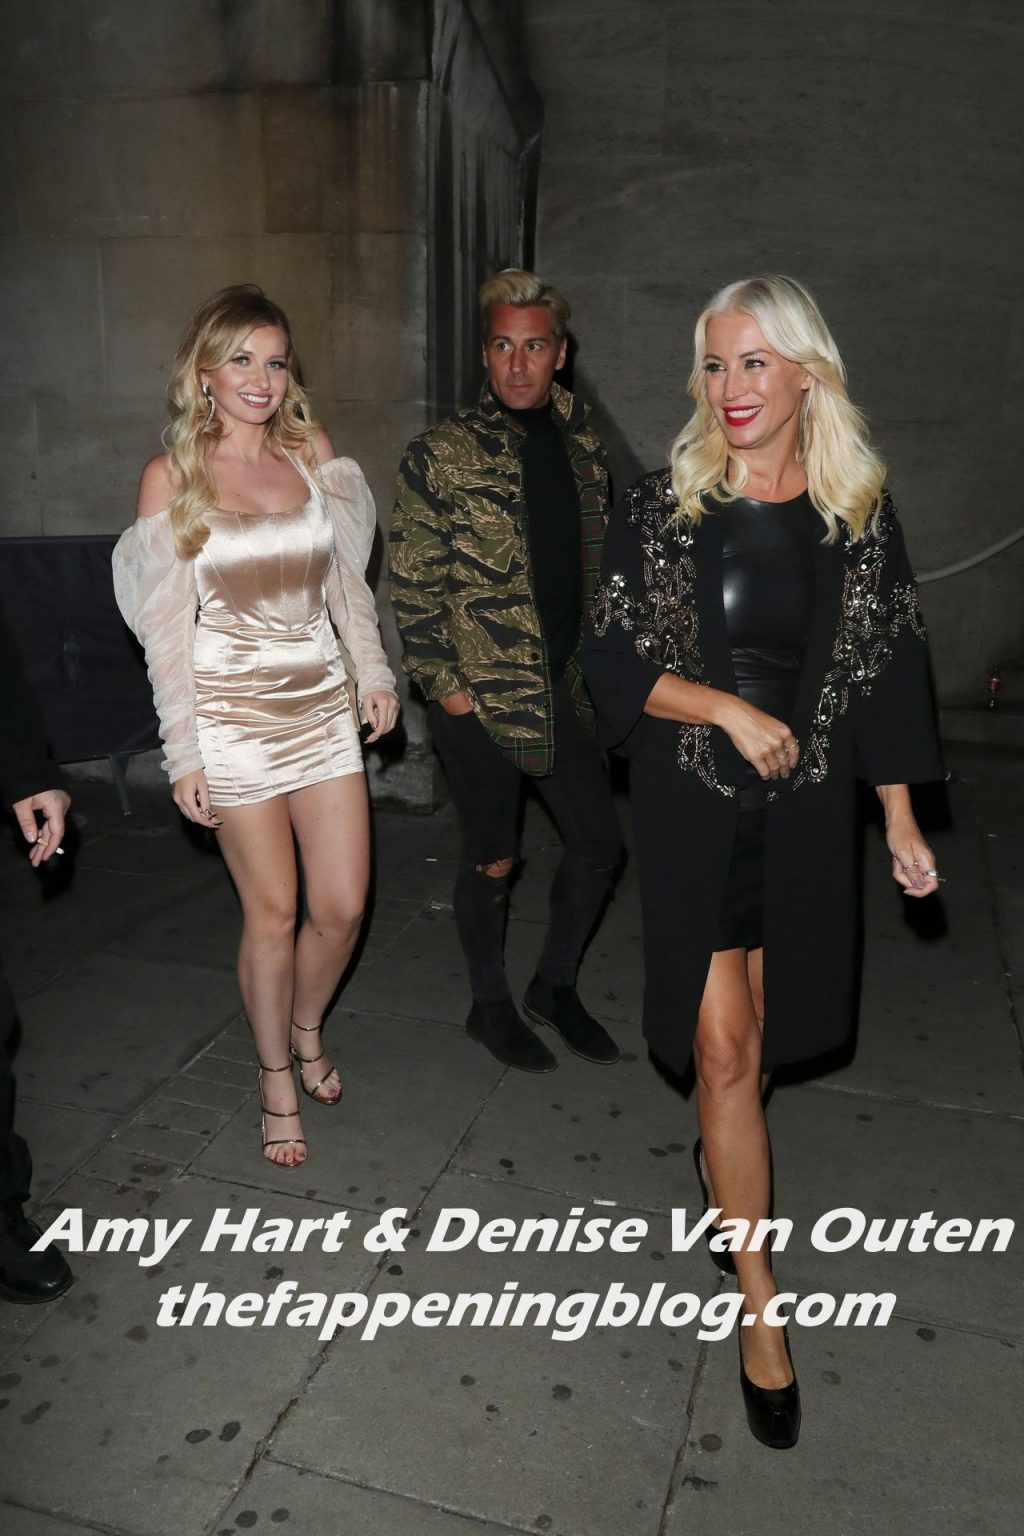 Amy Hart & Denise Van Outen are Pictured at Cabaret All Stars Show (81 Photos)